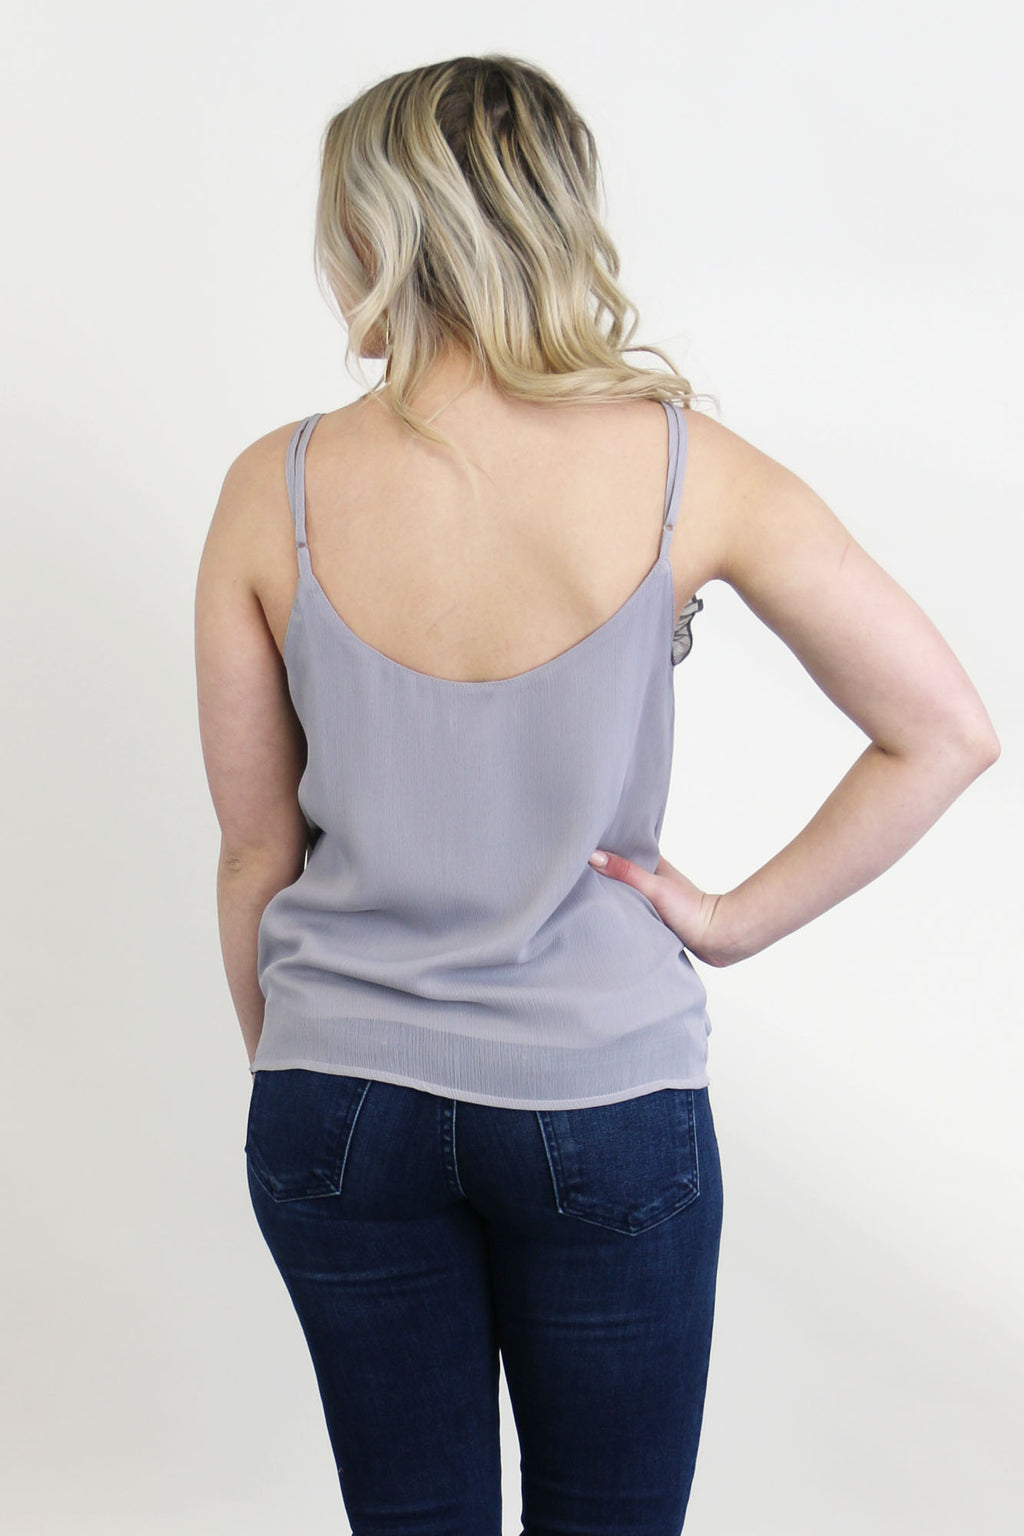 Lettuce Trim Cami Tank Top- Cool Grey - Yellow Kiss Boutique